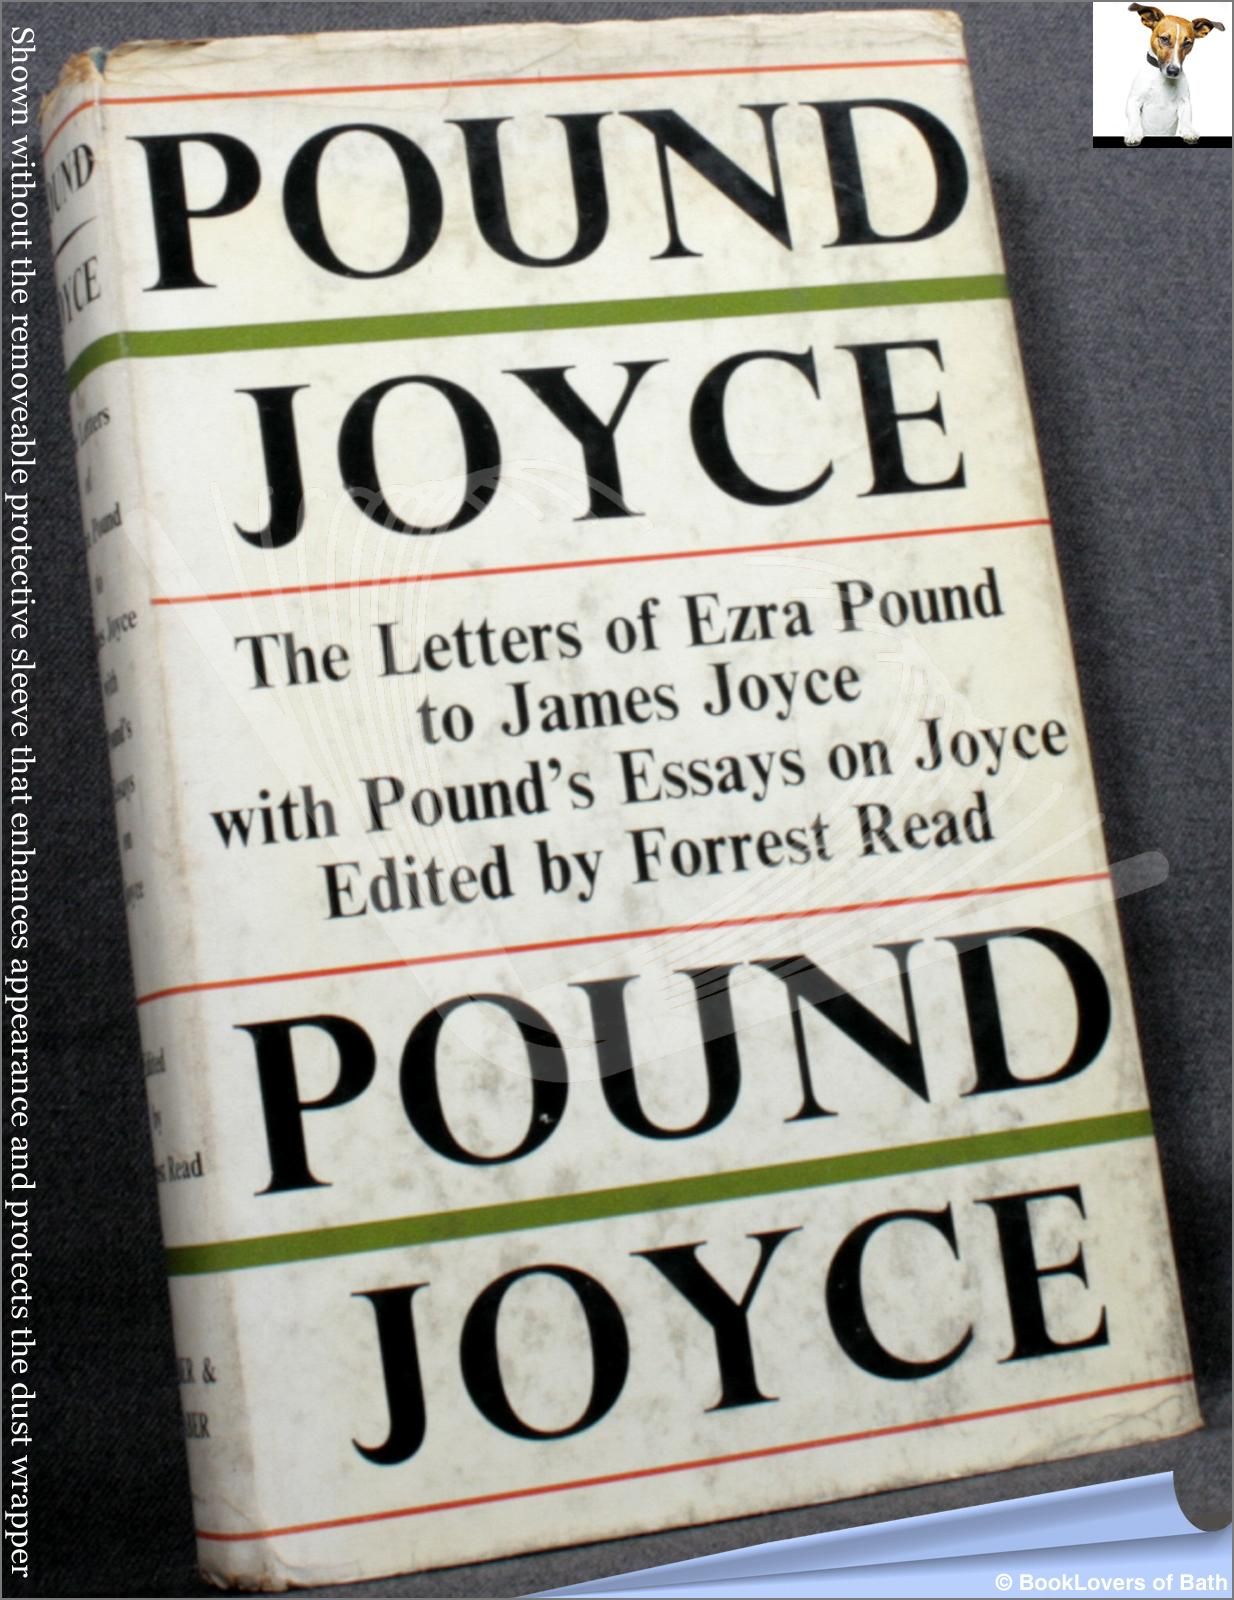 Pound/Joyce: The Letters of Ezra Pound to James Joyce, with Pound's Essays on Joyce - Edited by Forrest Read